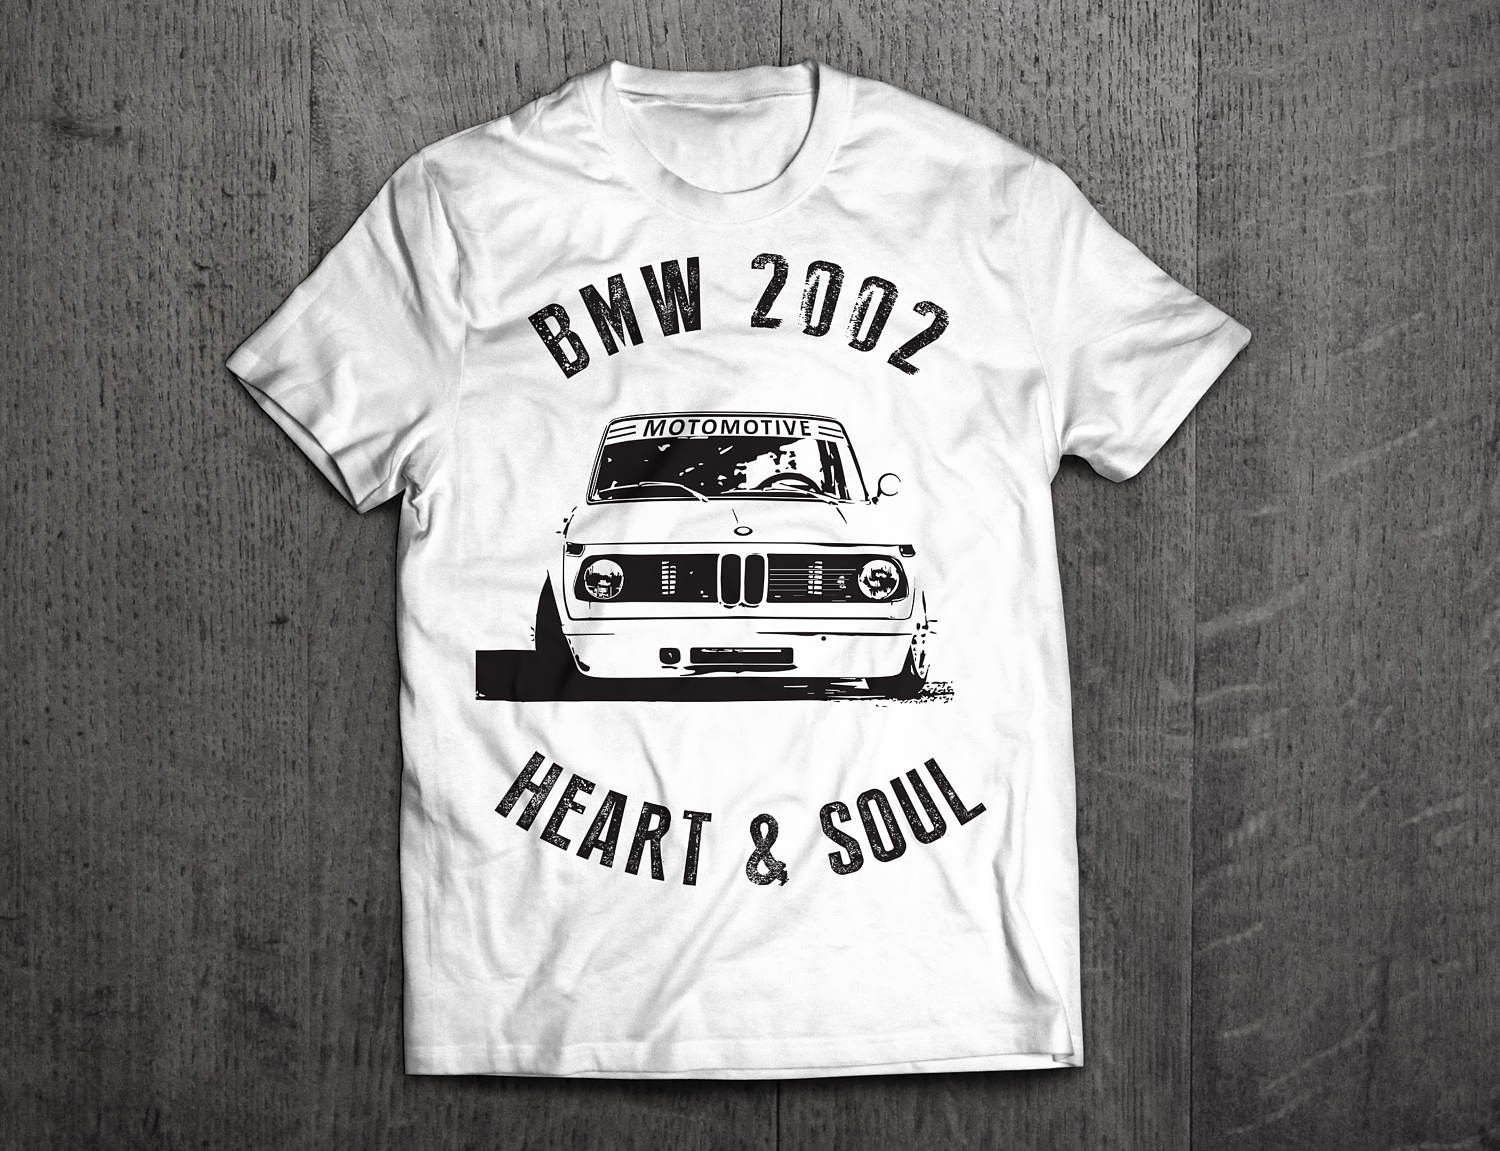 bmw 2002 shirts bmw t shirts bmw classic vintage cars. Black Bedroom Furniture Sets. Home Design Ideas